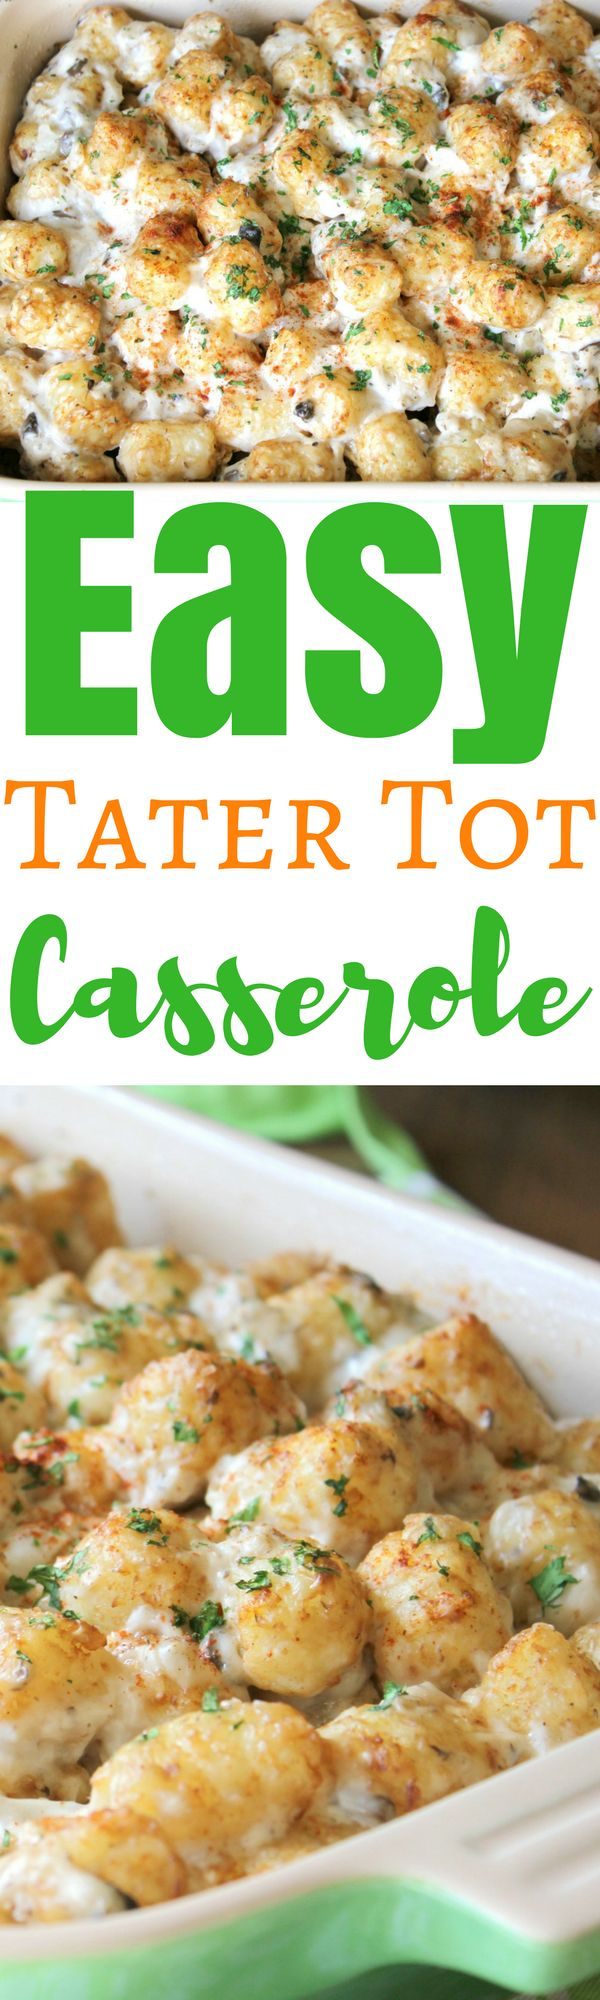 When you're not sure what to cook for dinner, this Easy Tater Tot Casserole recipe is the perfect option. A quick & easy meal the family loves. via @simplymommy